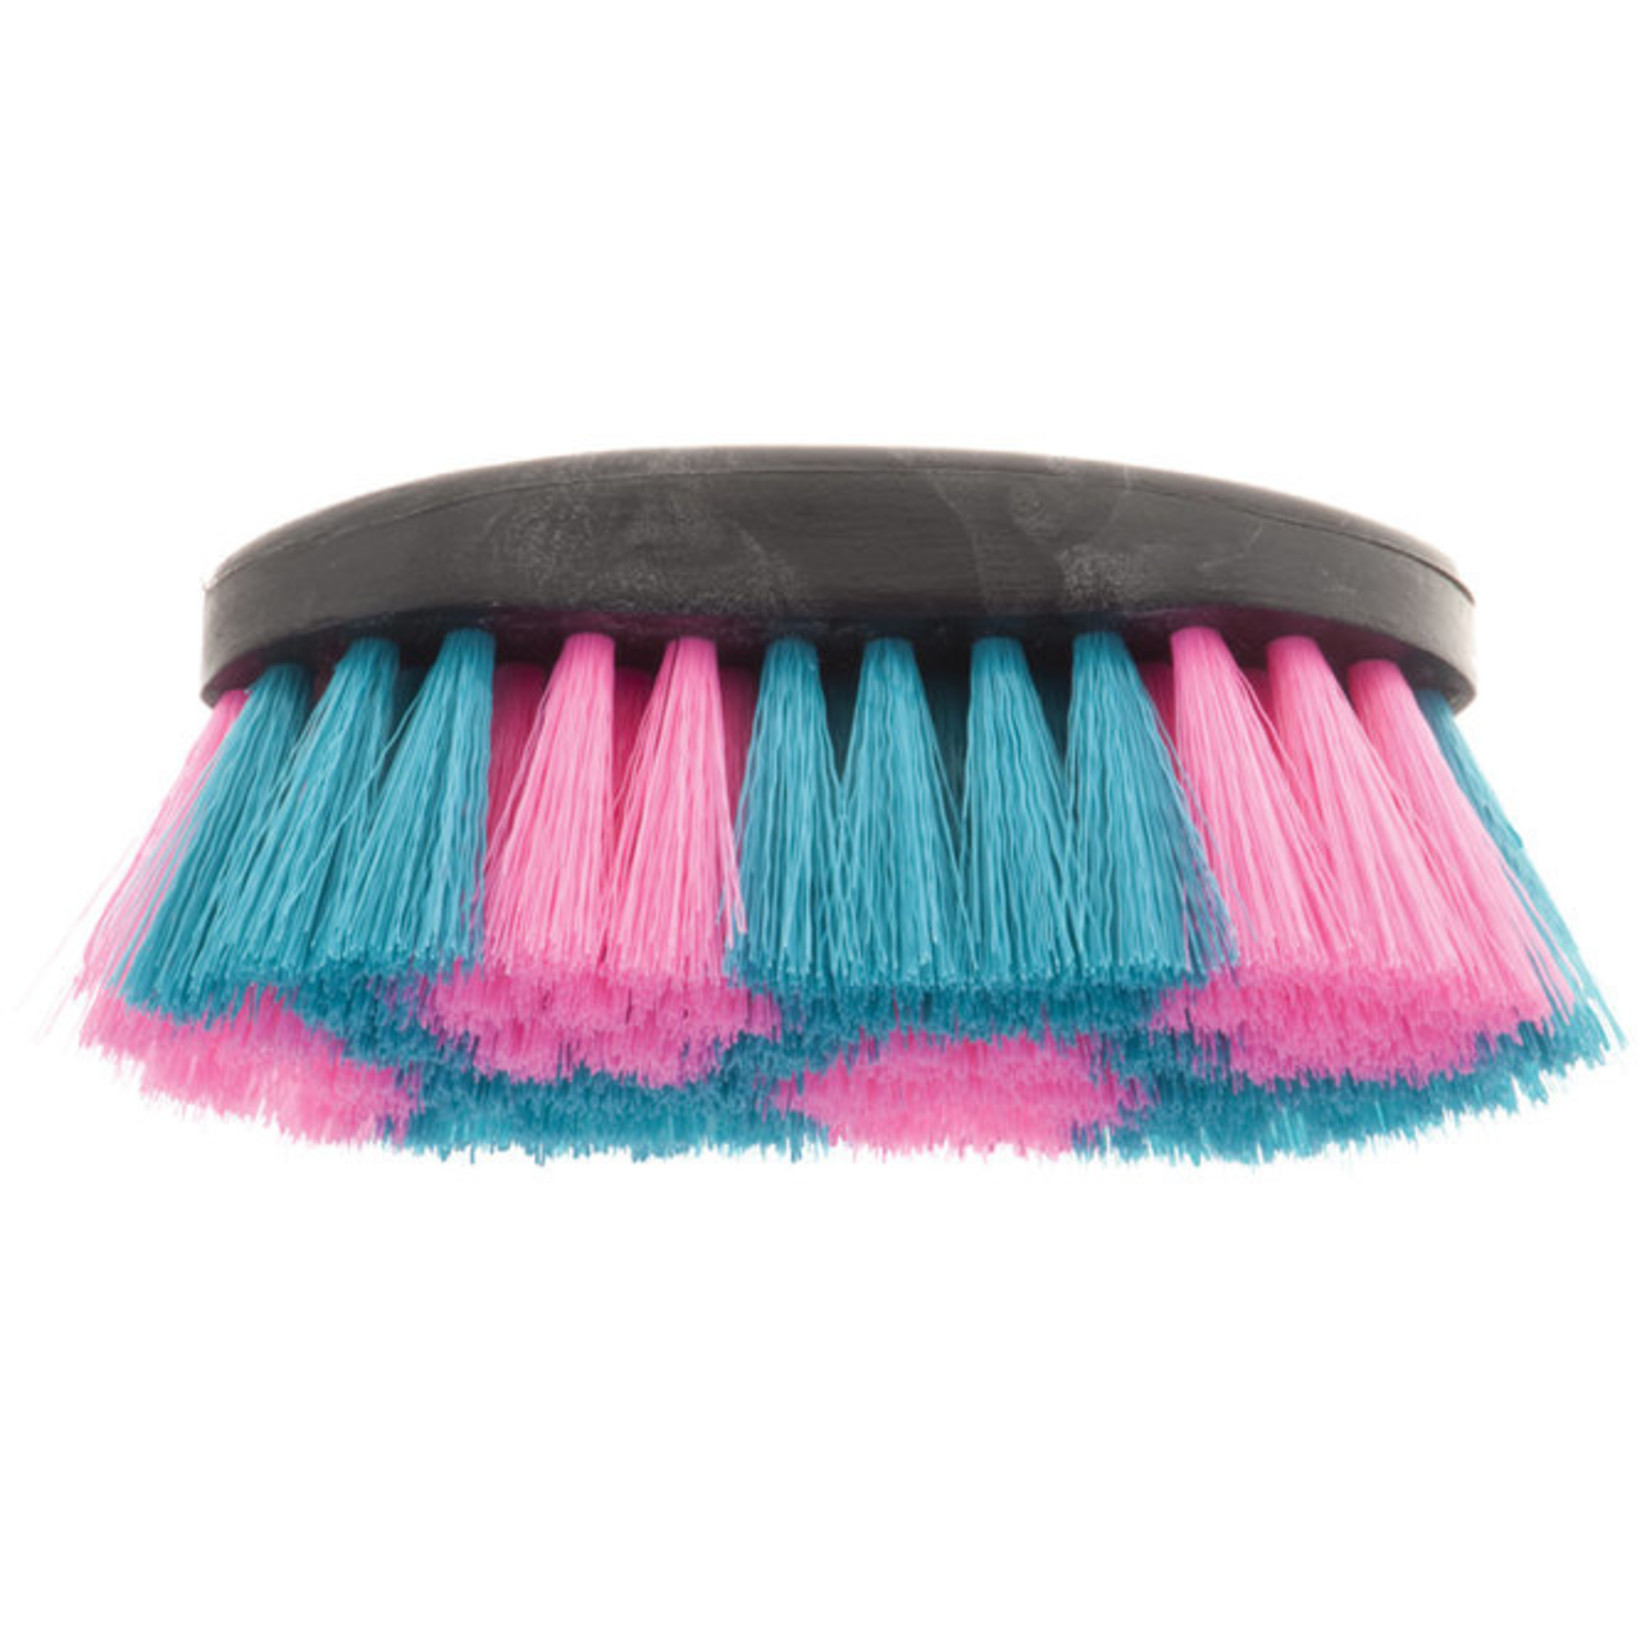 Body Brush - Teal/Pink